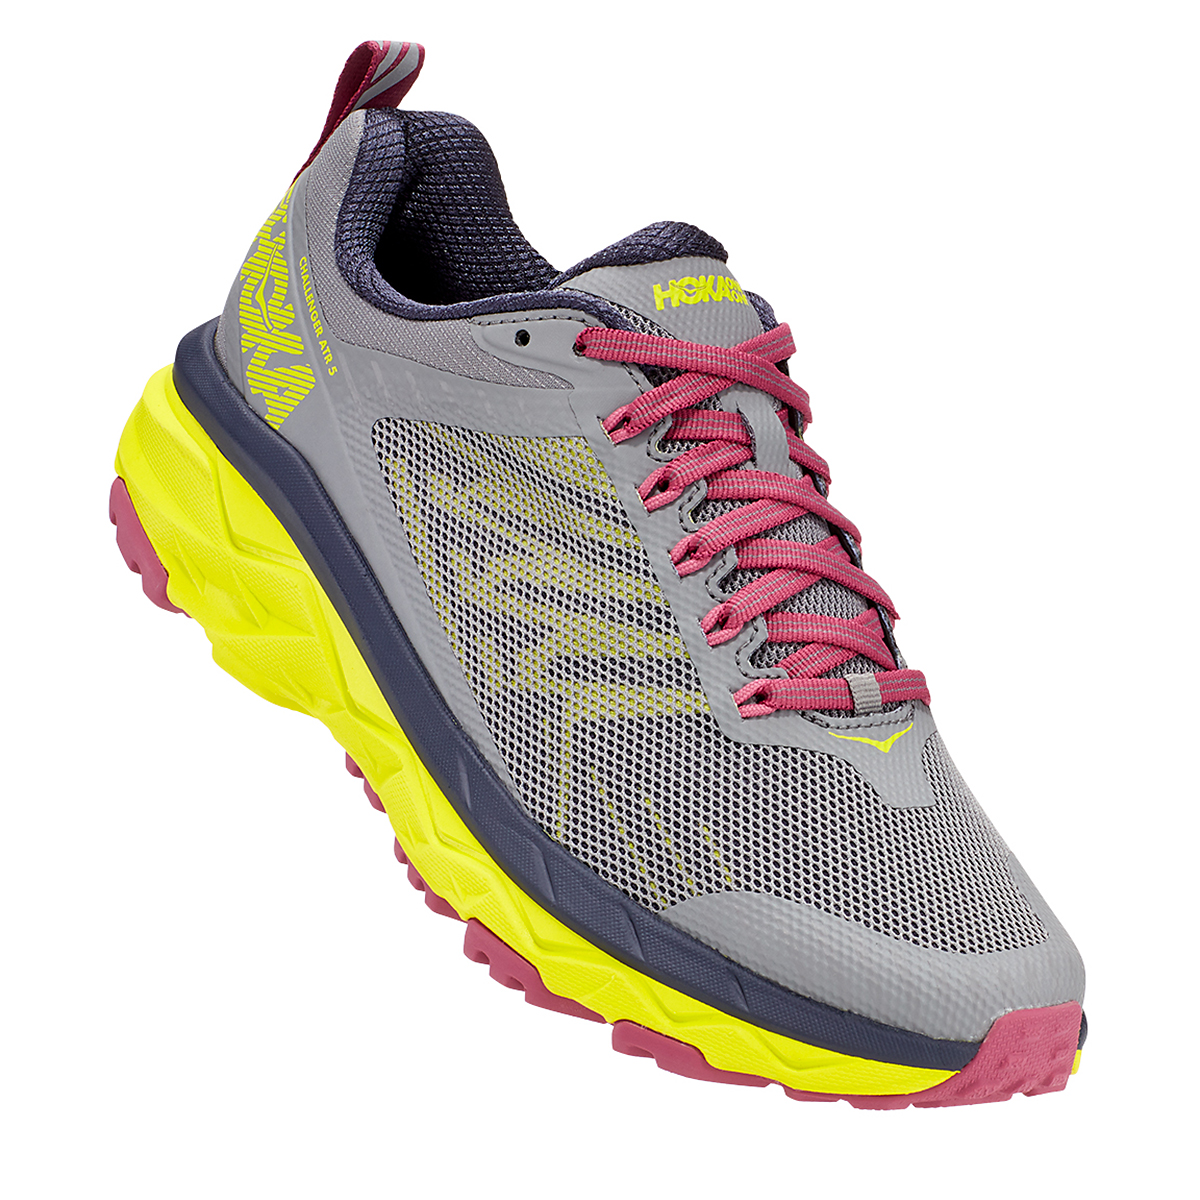 Women's Hoka One One Challenger ATR 5 Trail Running Shoe - Color: Frost Gray/Evening Primrose - Size: 5 - Width: Regular, Frost Gray/Evening Primrose, large, image 3